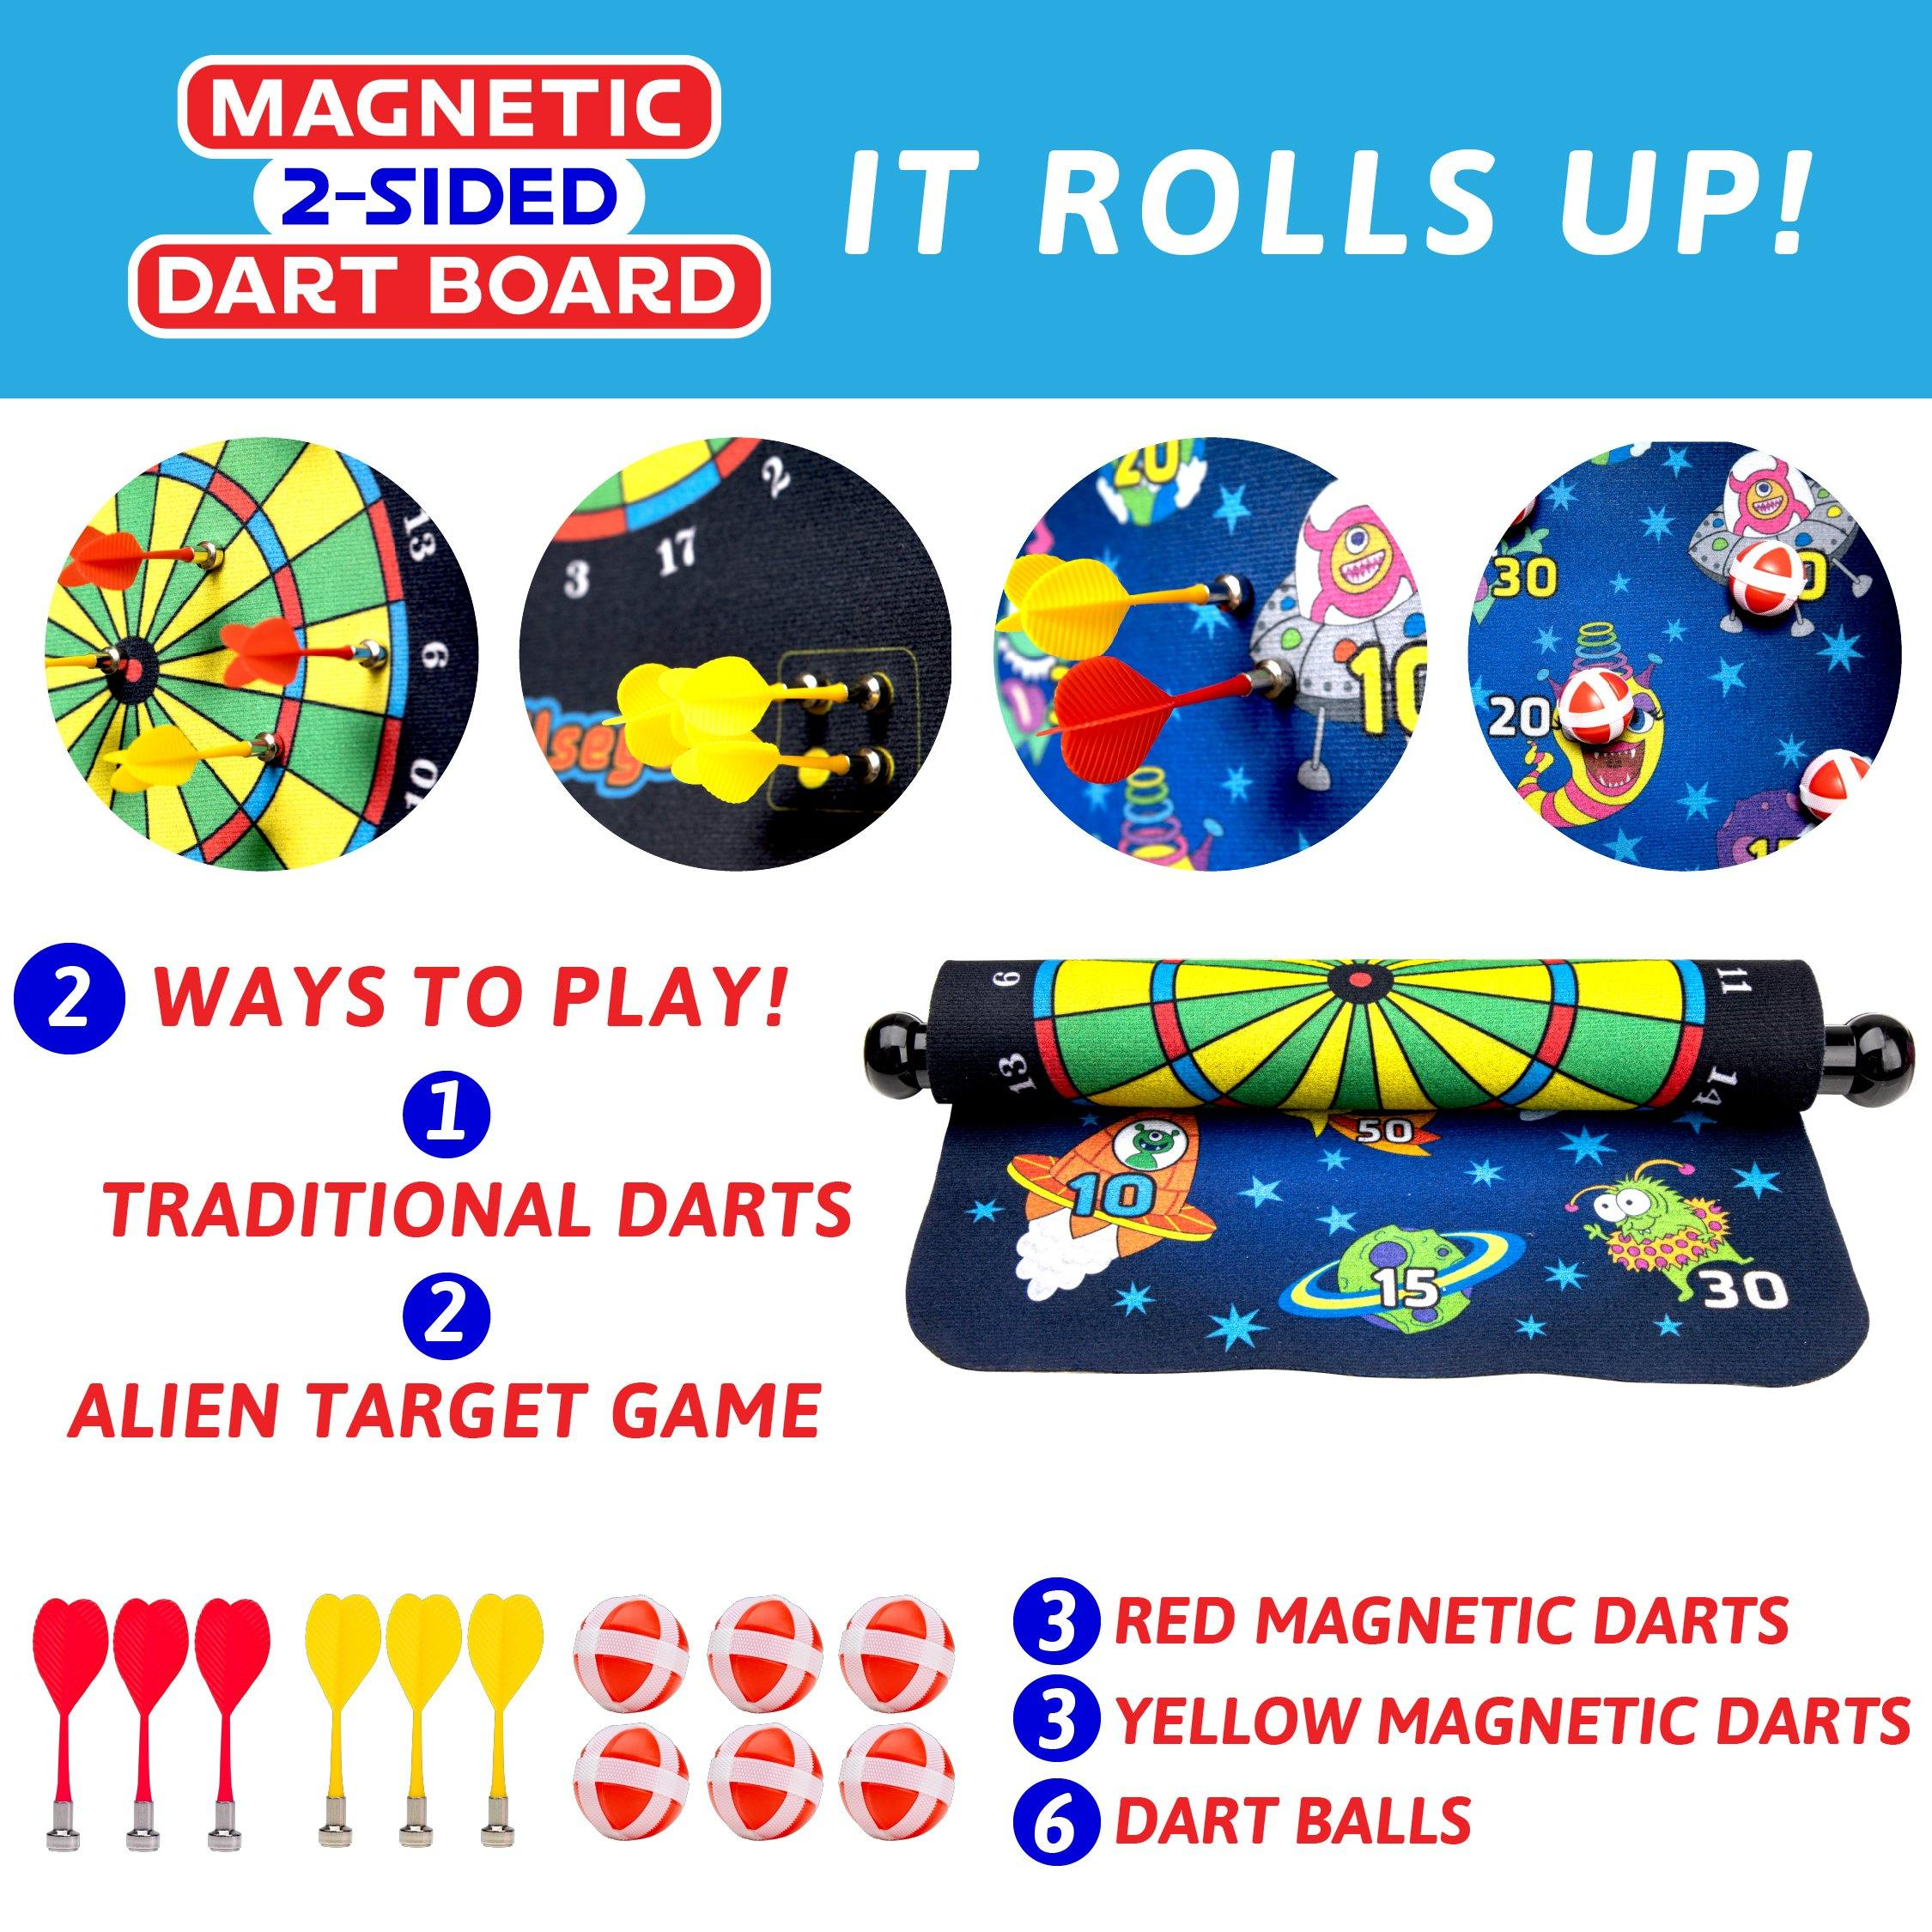 Double-Sided Roll Up Dartboard with Magnetic Darts and Balls - poweryourfun